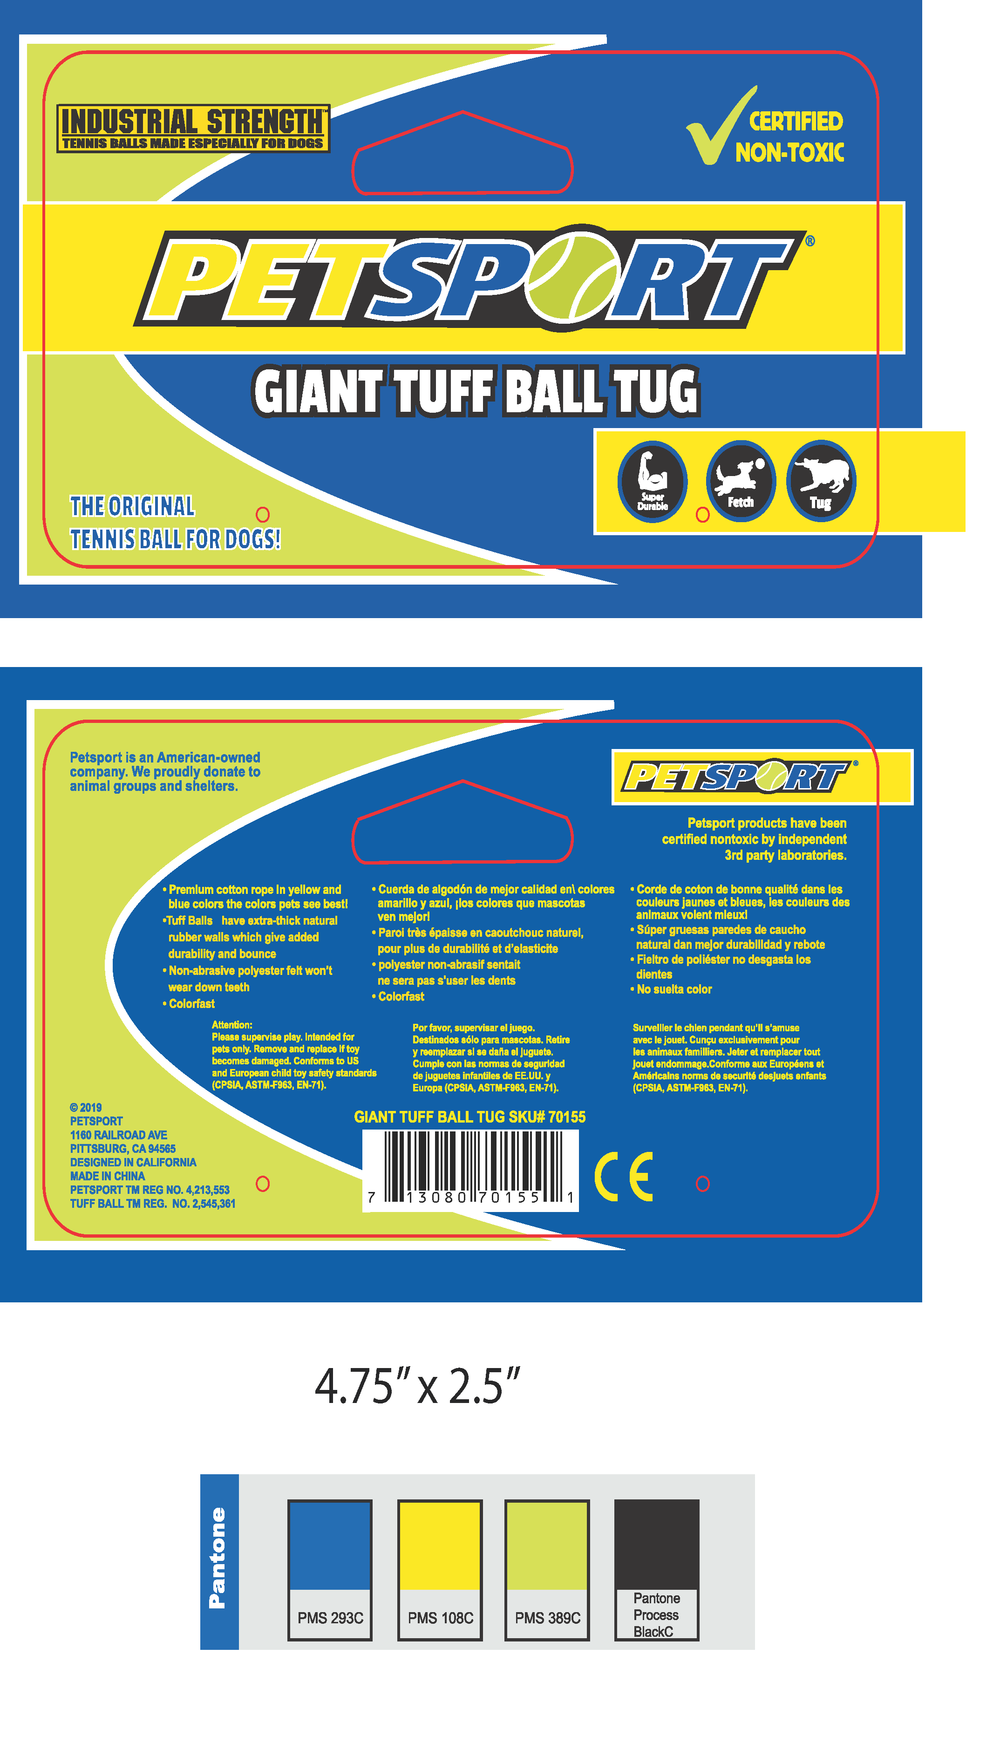 70155 Giant Tuff Ball Tug 7-12-18 All Outlines.png